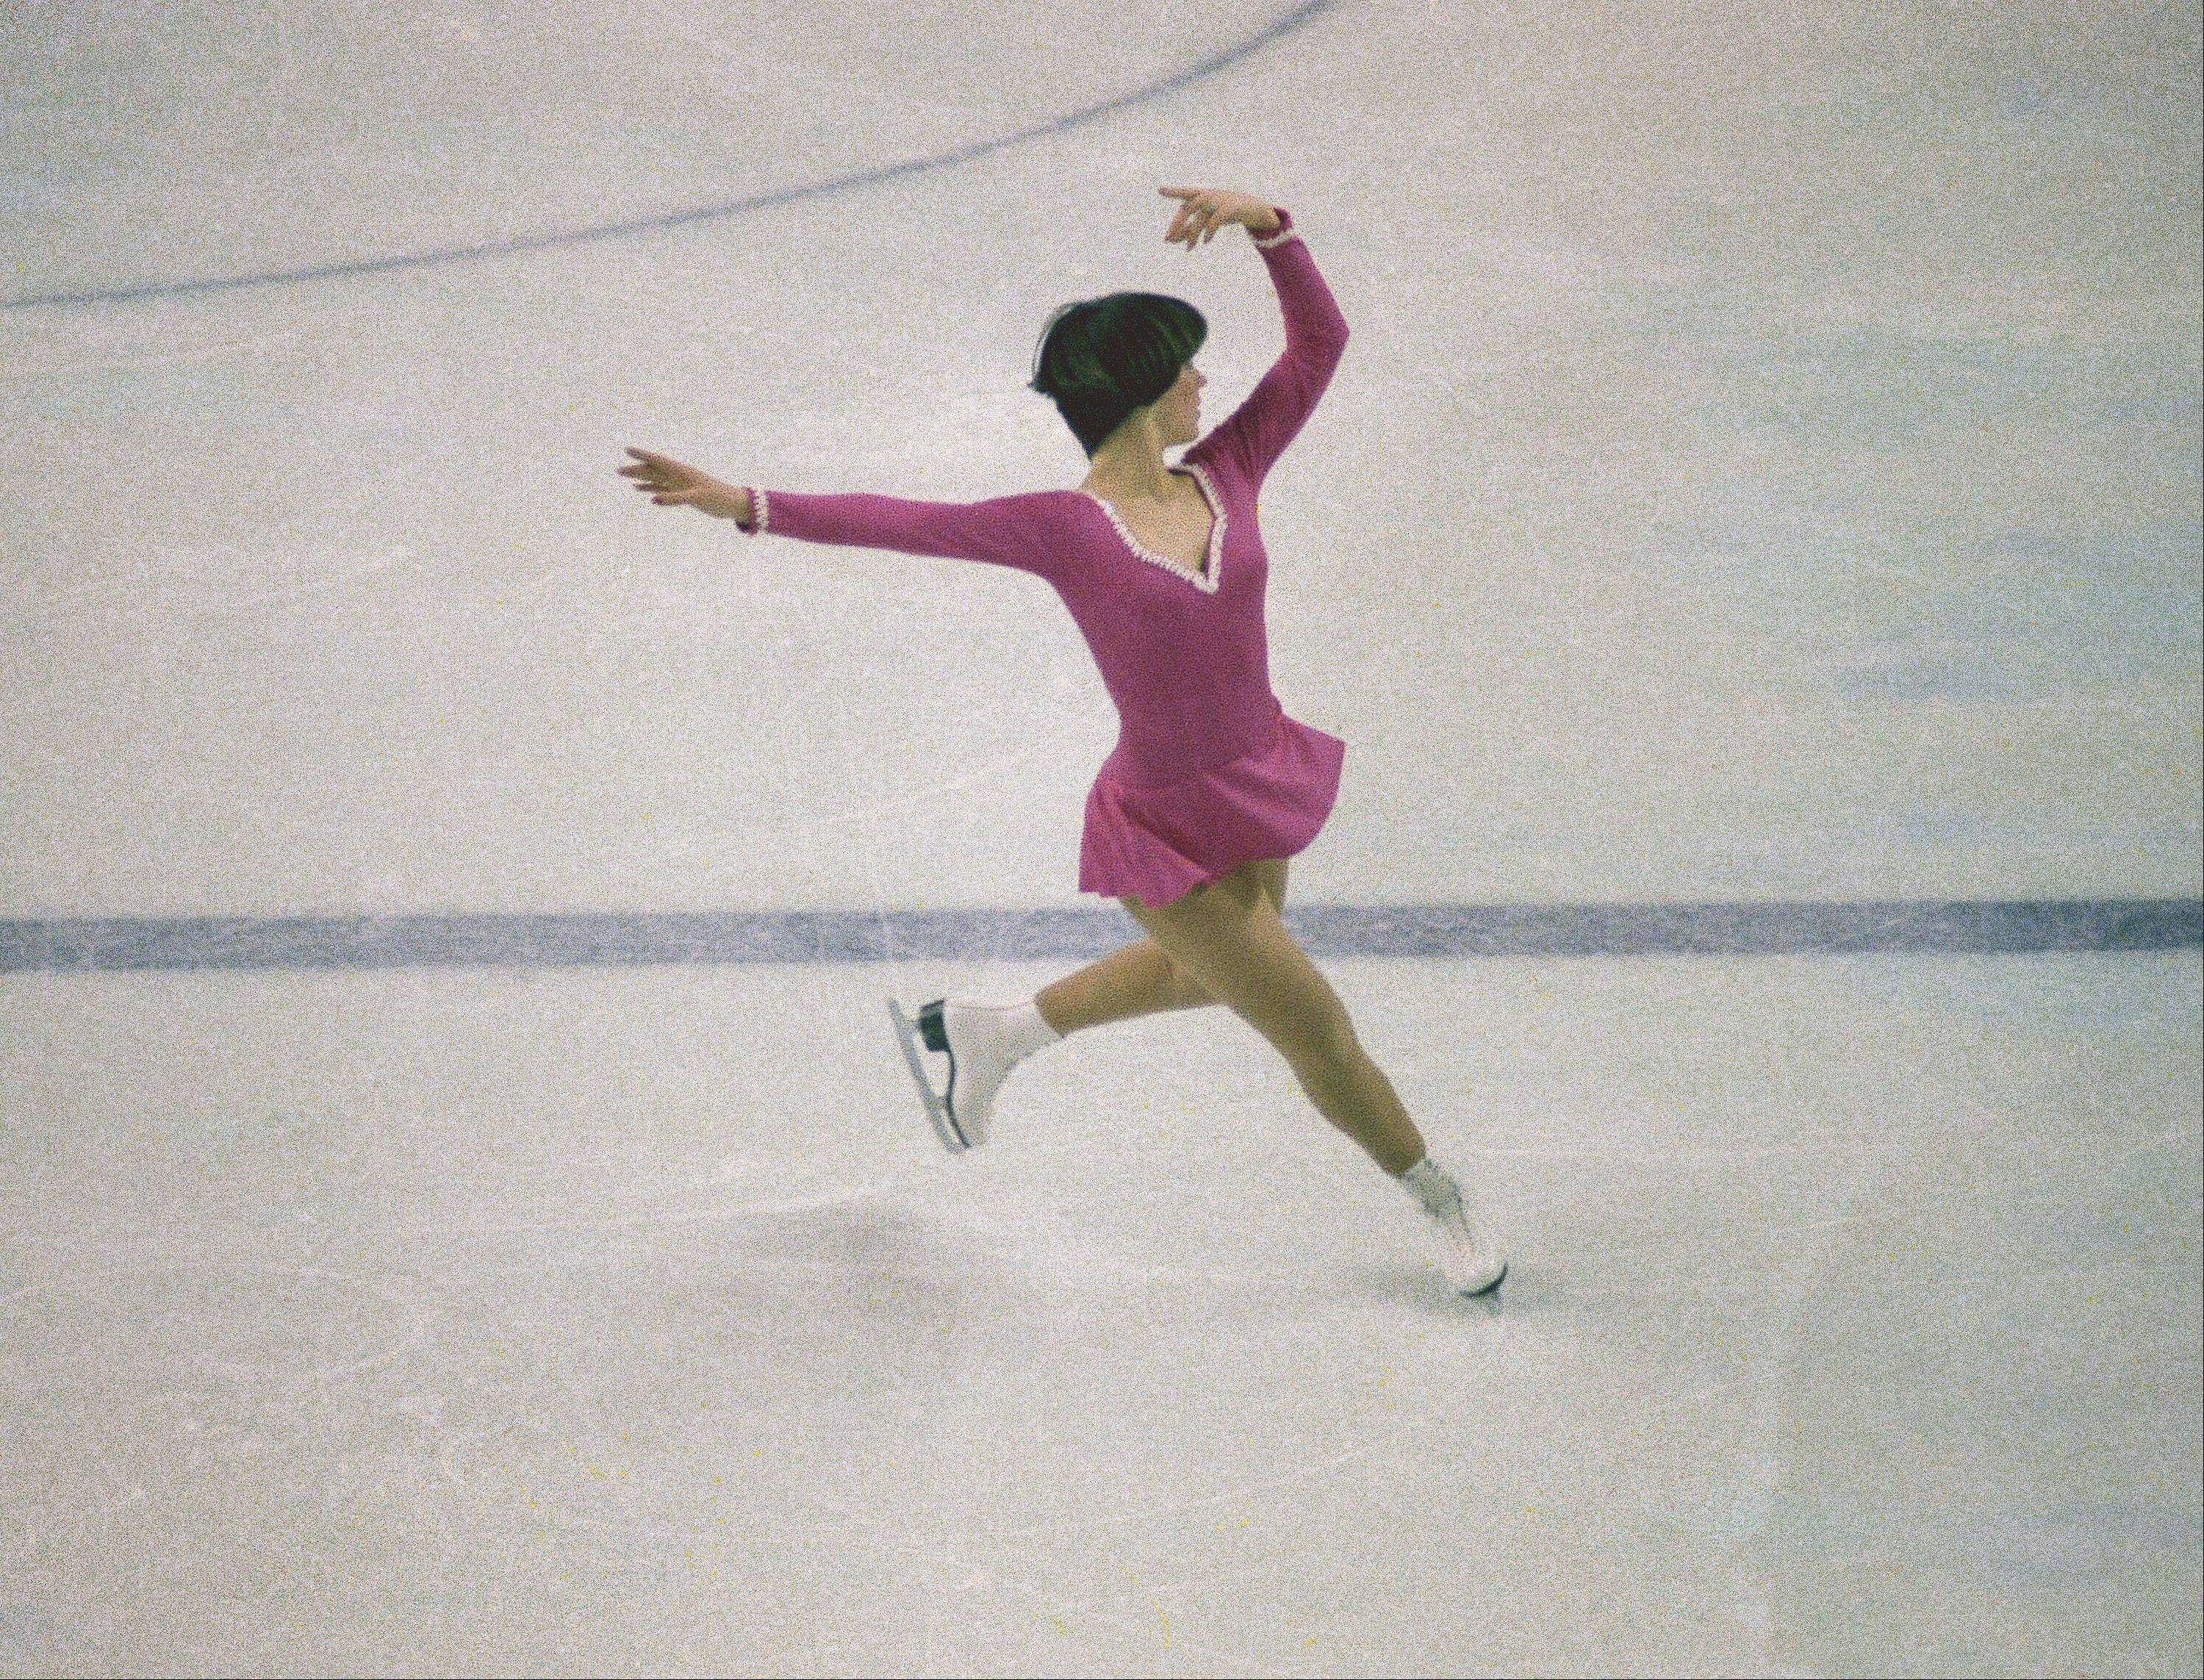 Dorothy Hamill, seen here during the 1976 Olympics, will be part of the Stars on Ice Tour that comes to the Allstate Arena March 8.